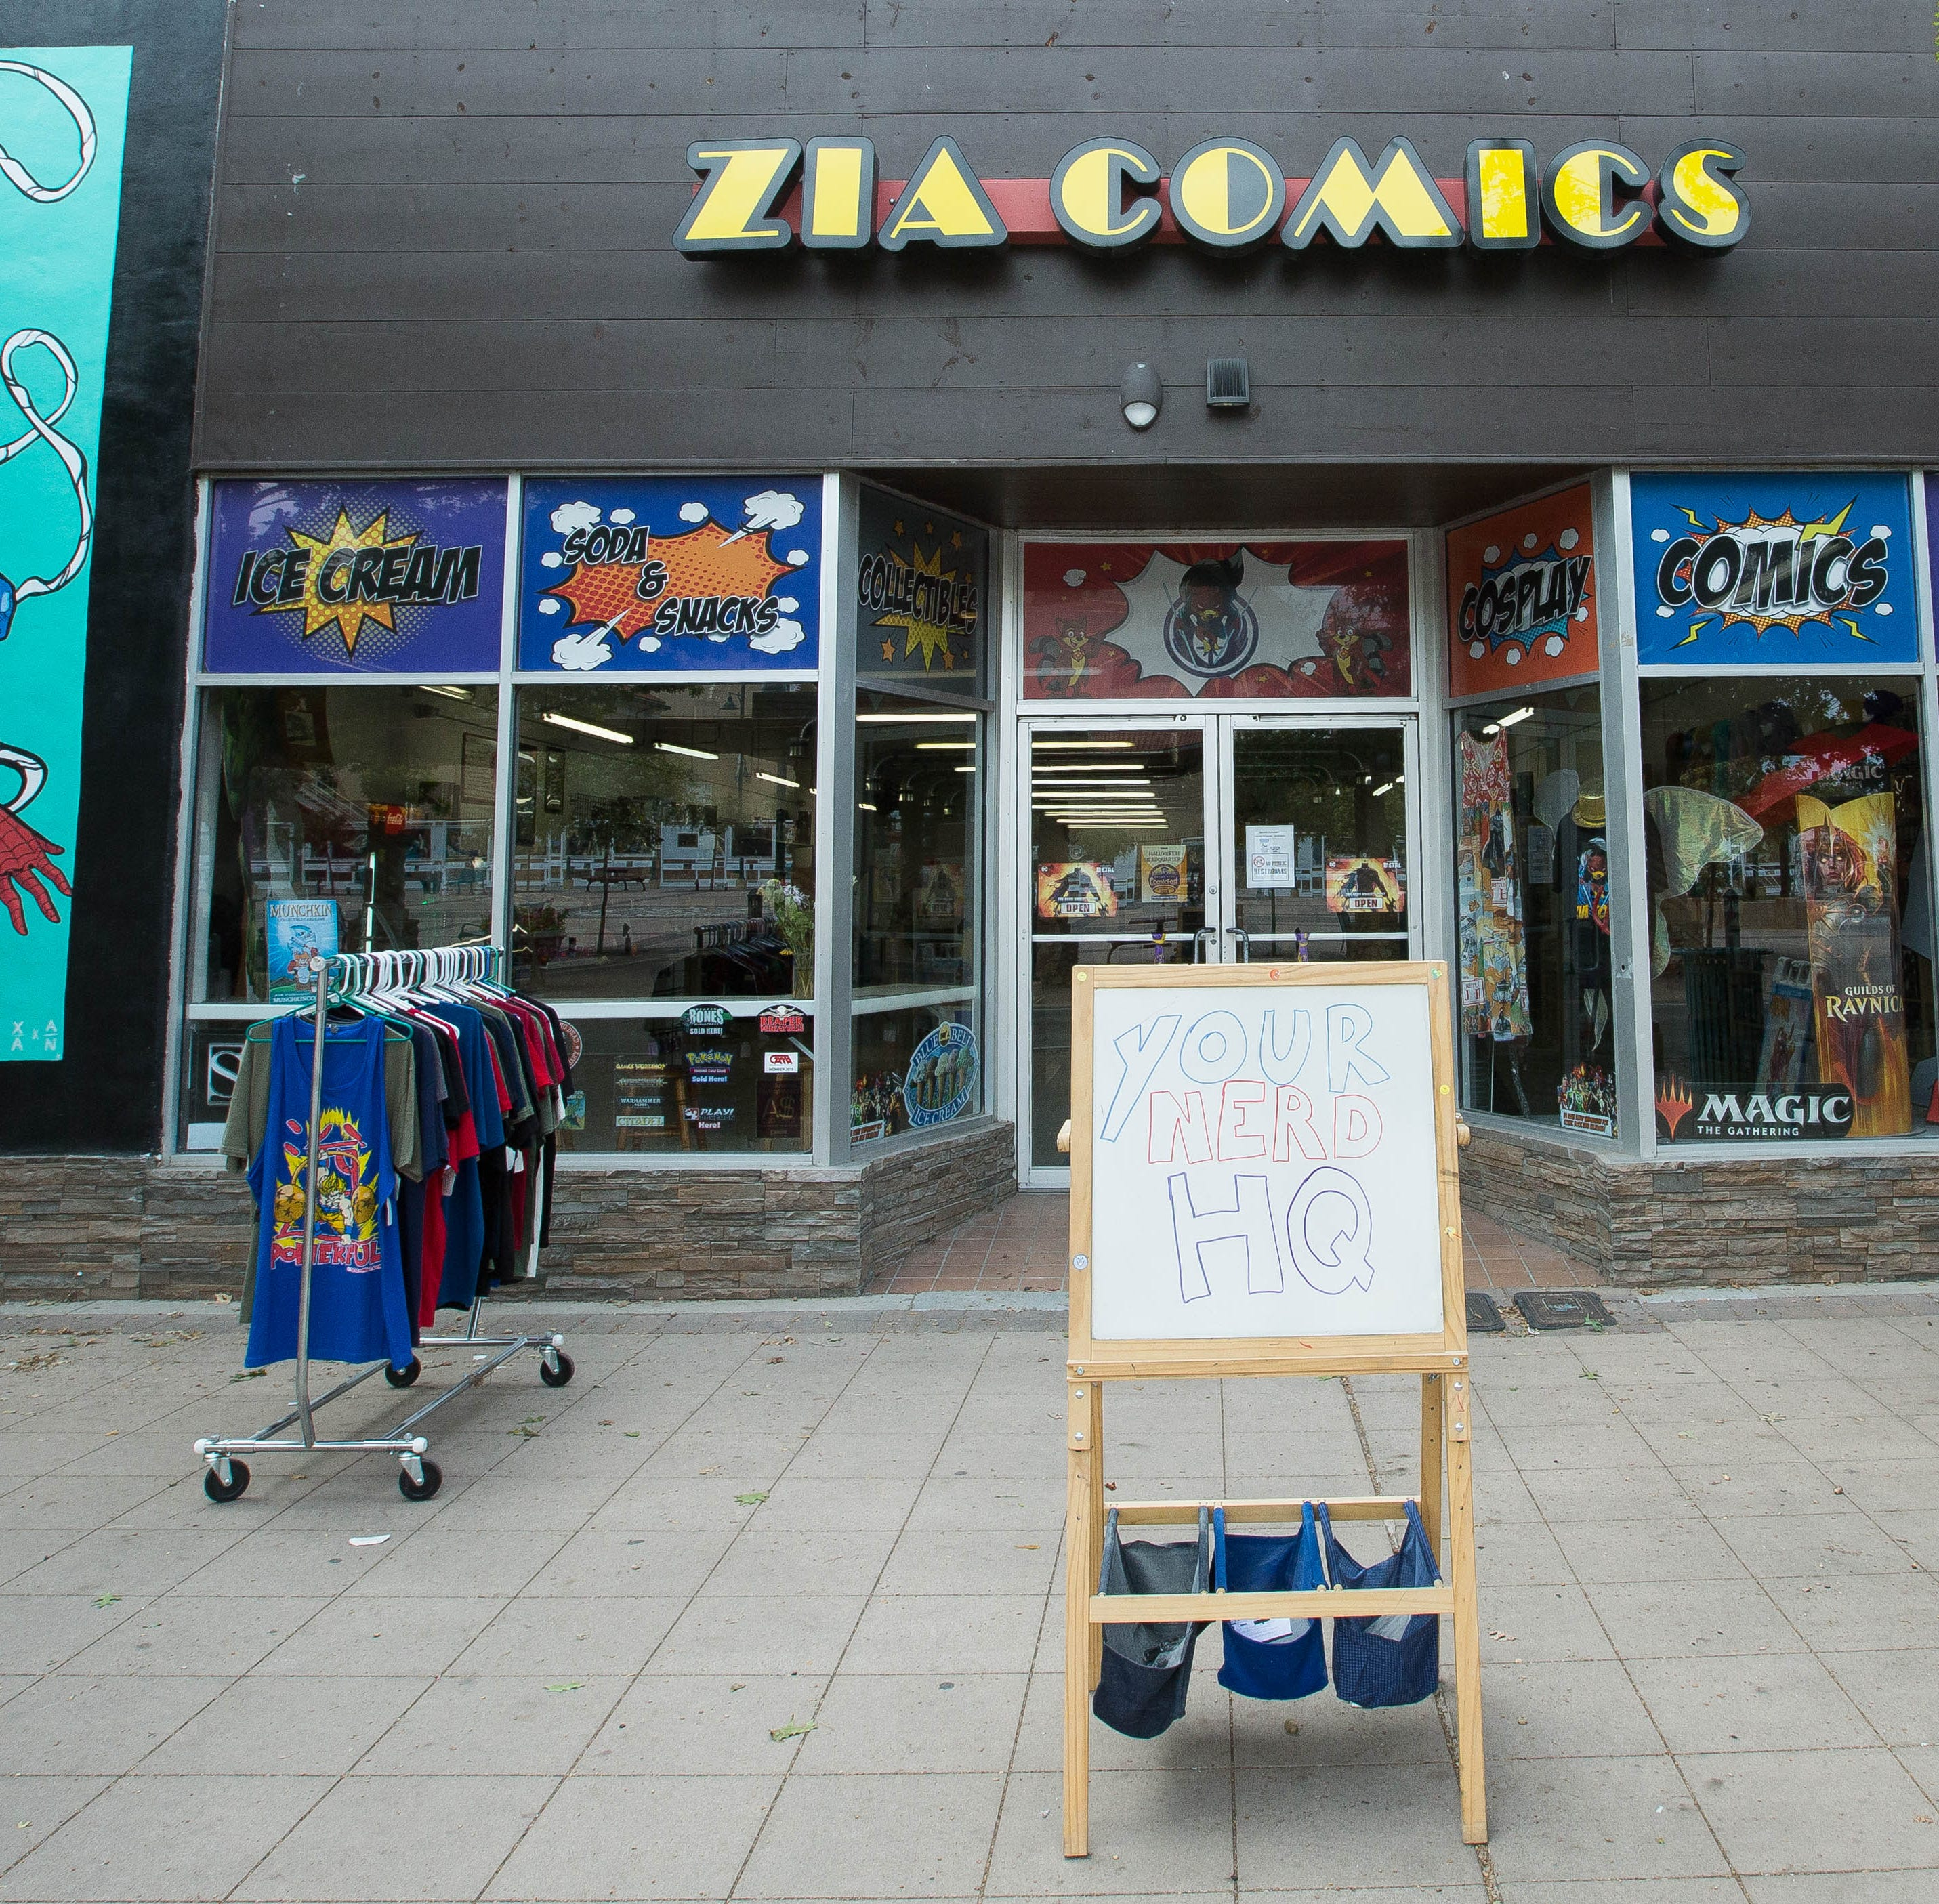 Zia Comics moves to downtown Las Cruces, expands gaming and cosplay services